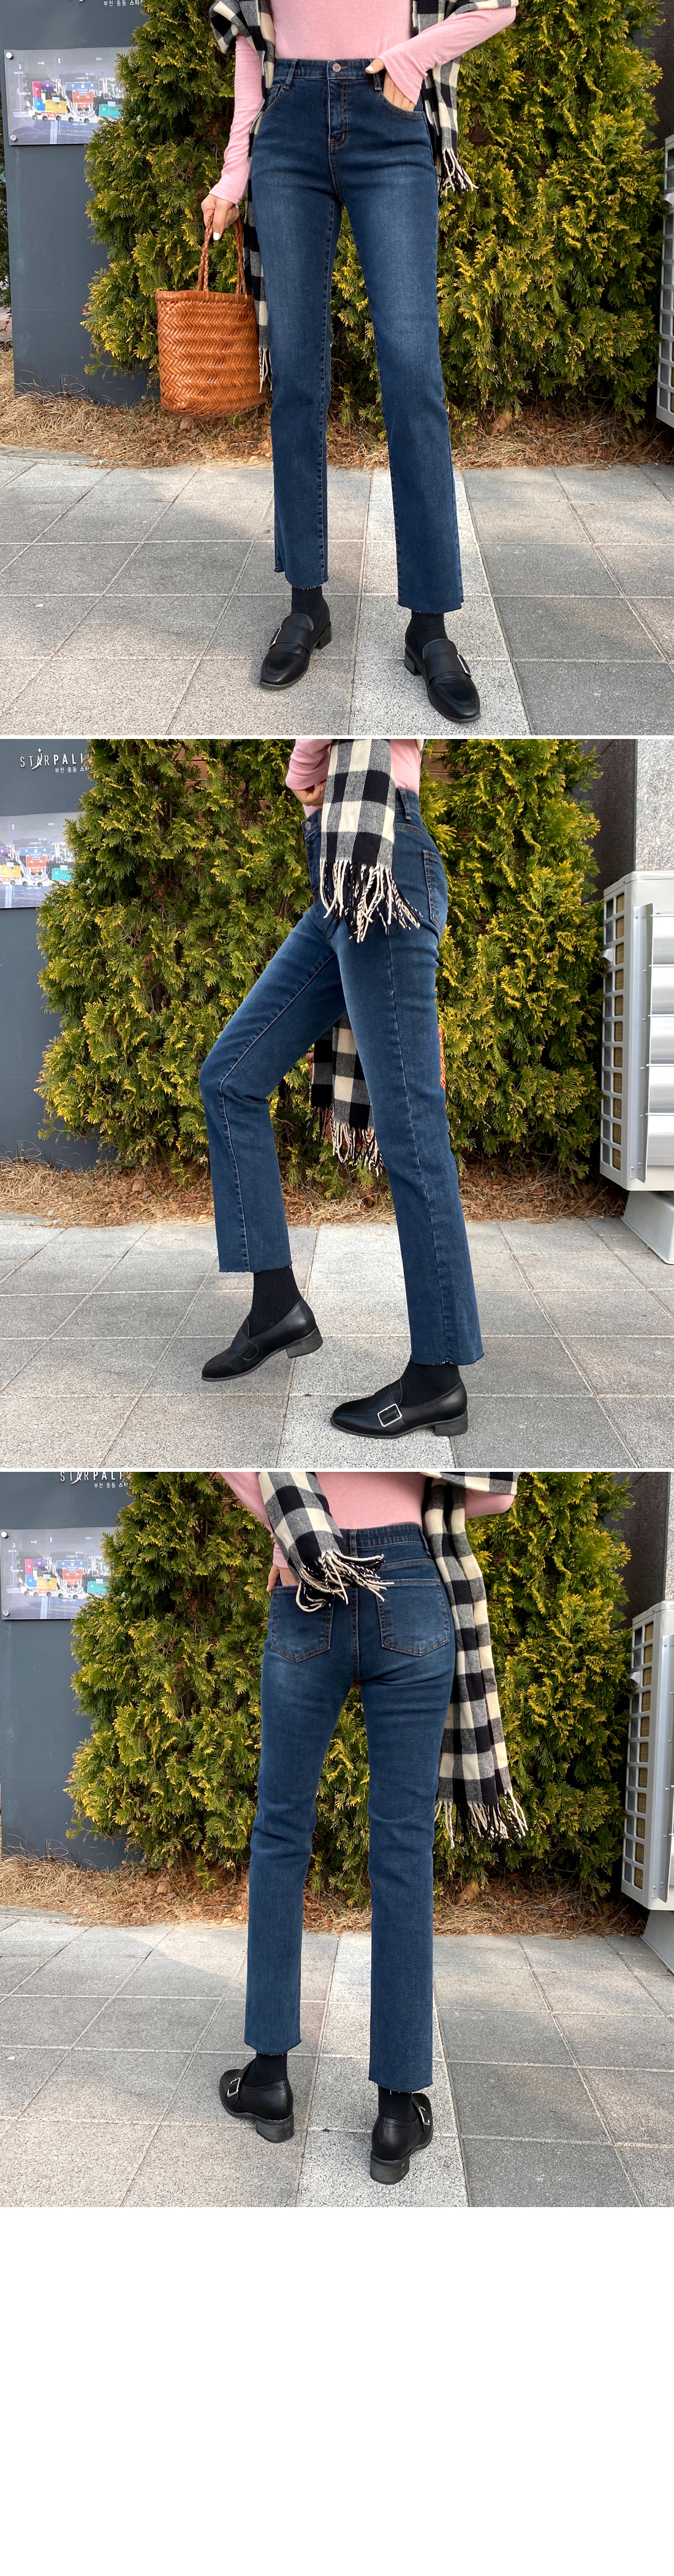 Thermolite Fleece-lined inner band Spandex straight jeans